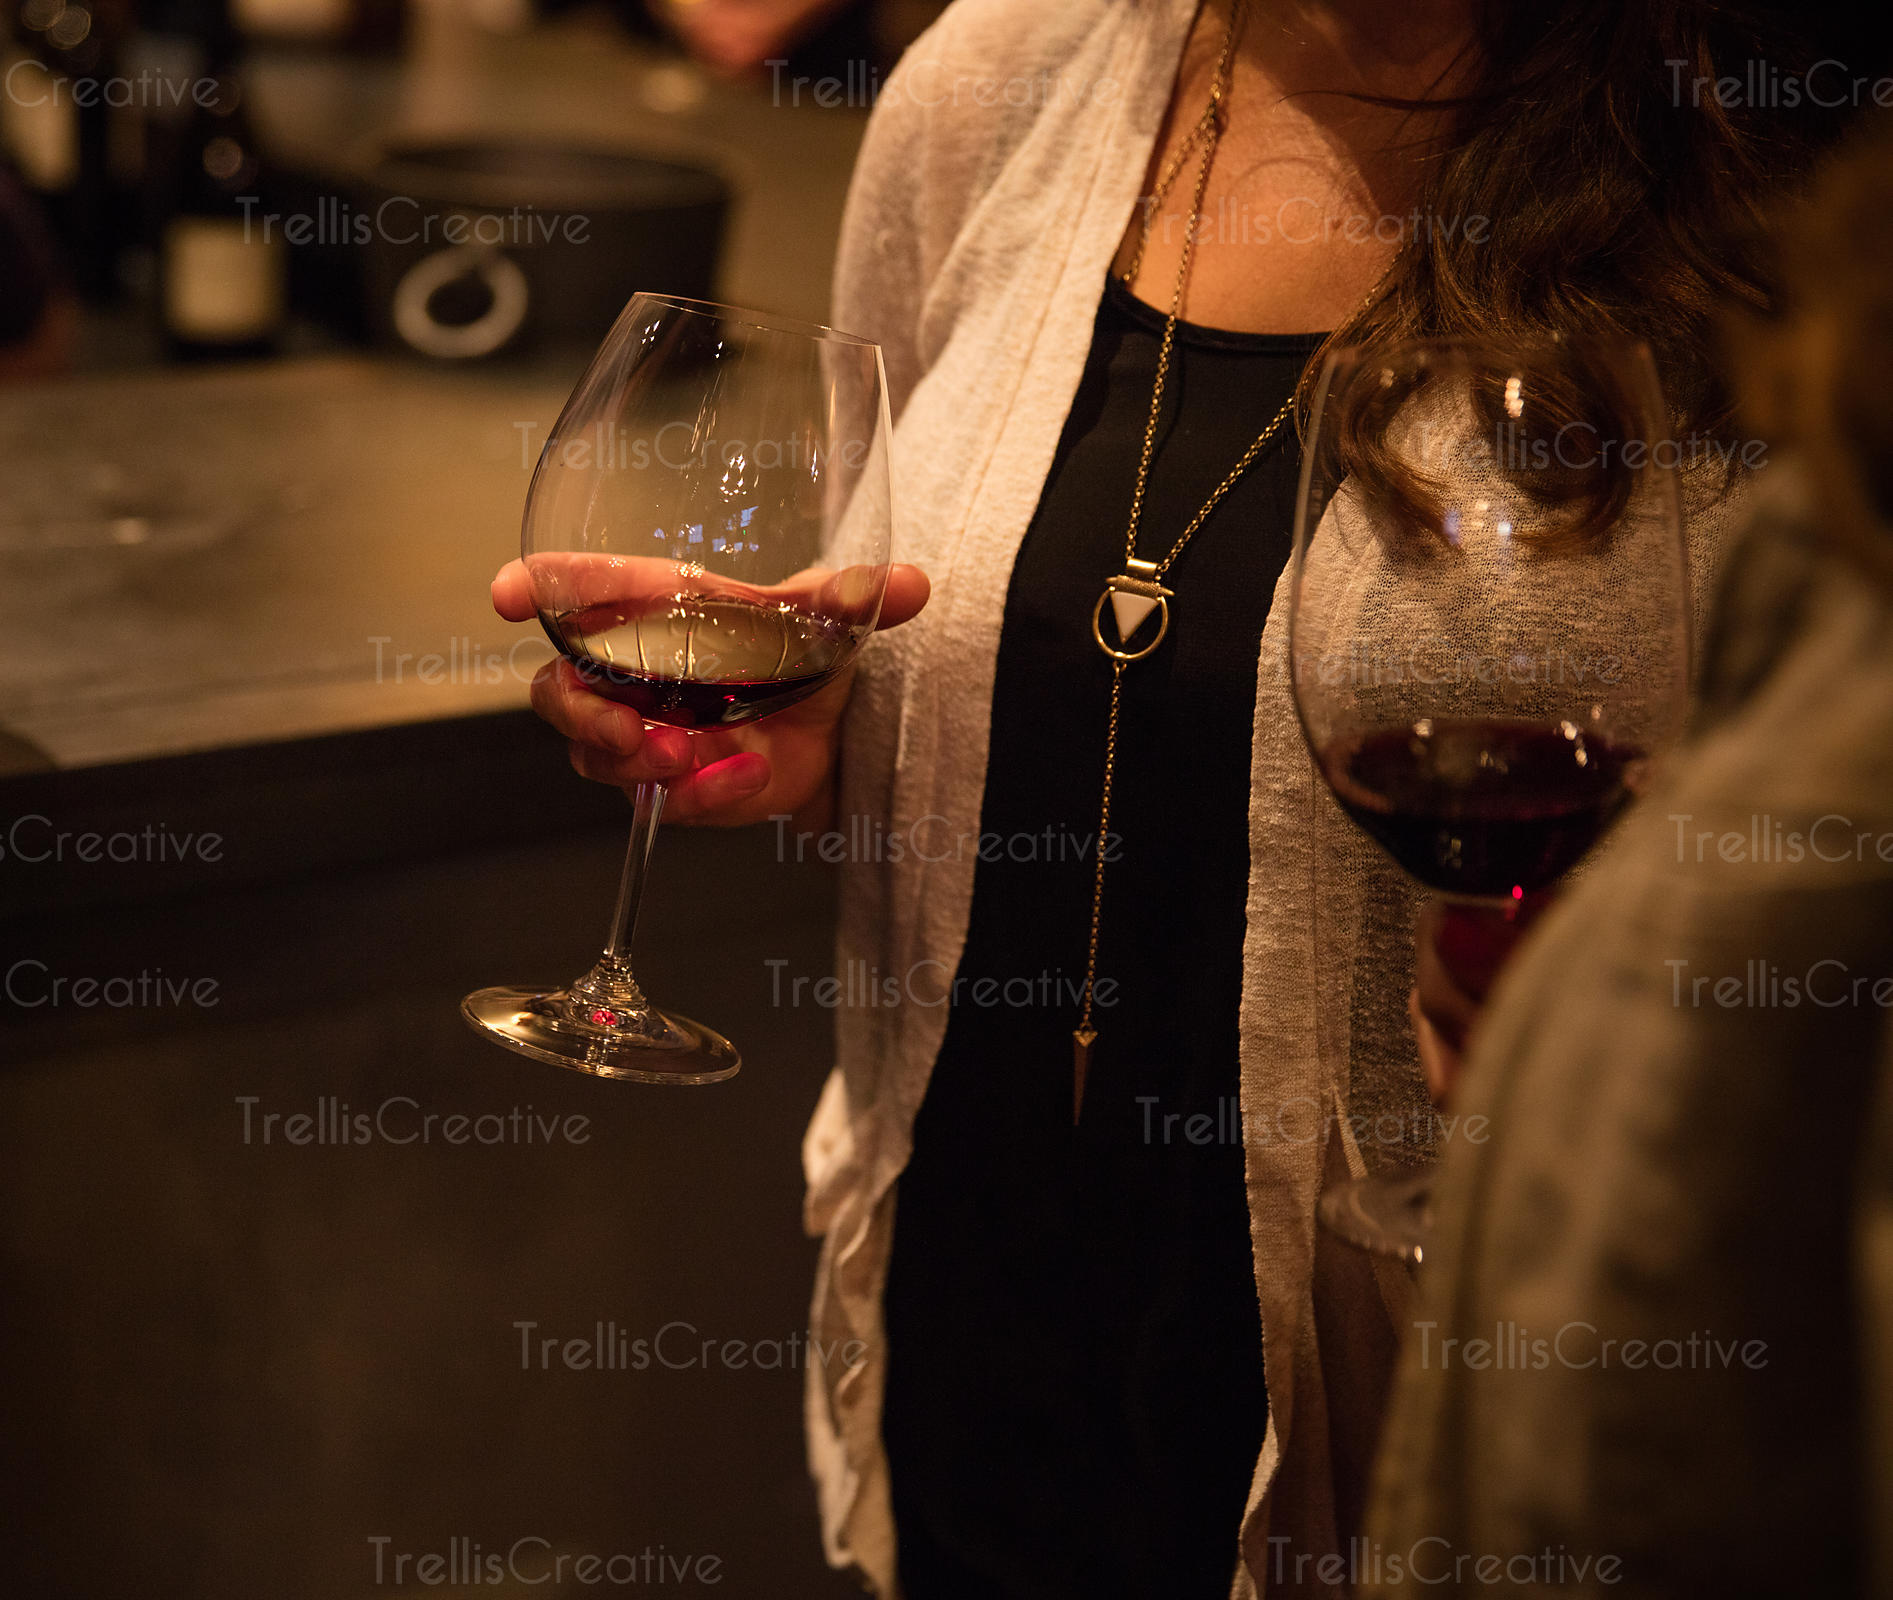 A lady holding red wine glassat an event